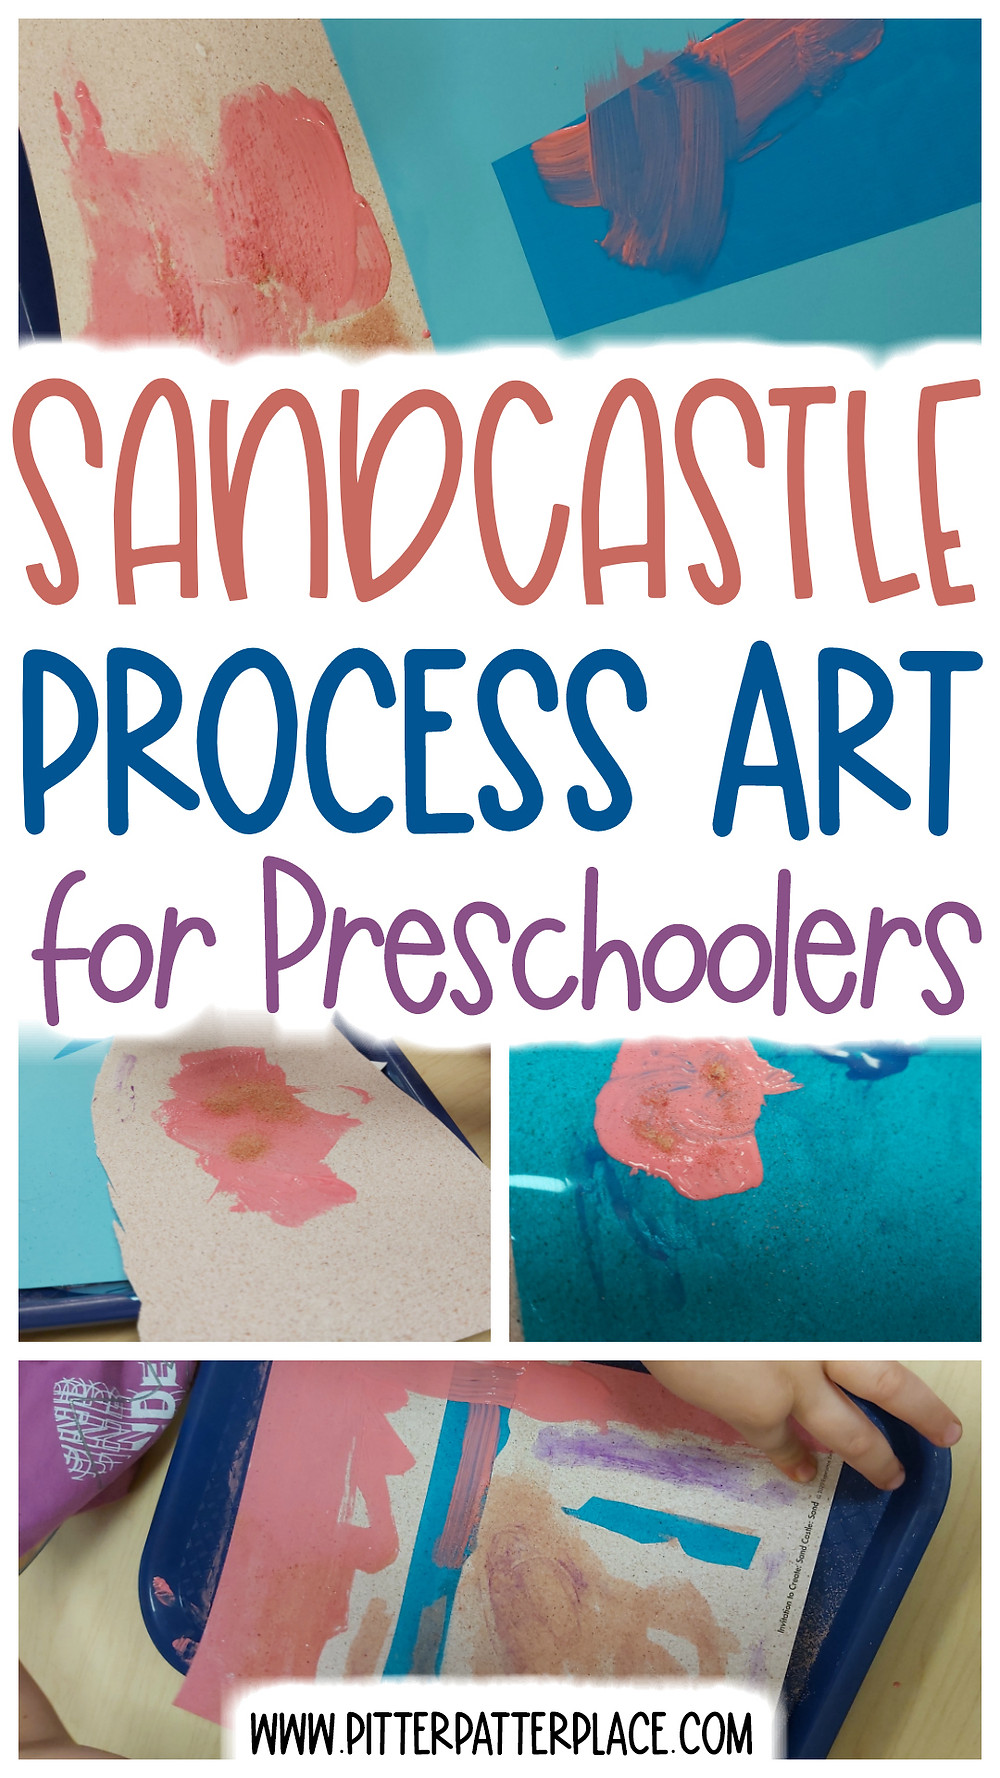 process art collage with text: Sandcastle Process Art for Preschoolers